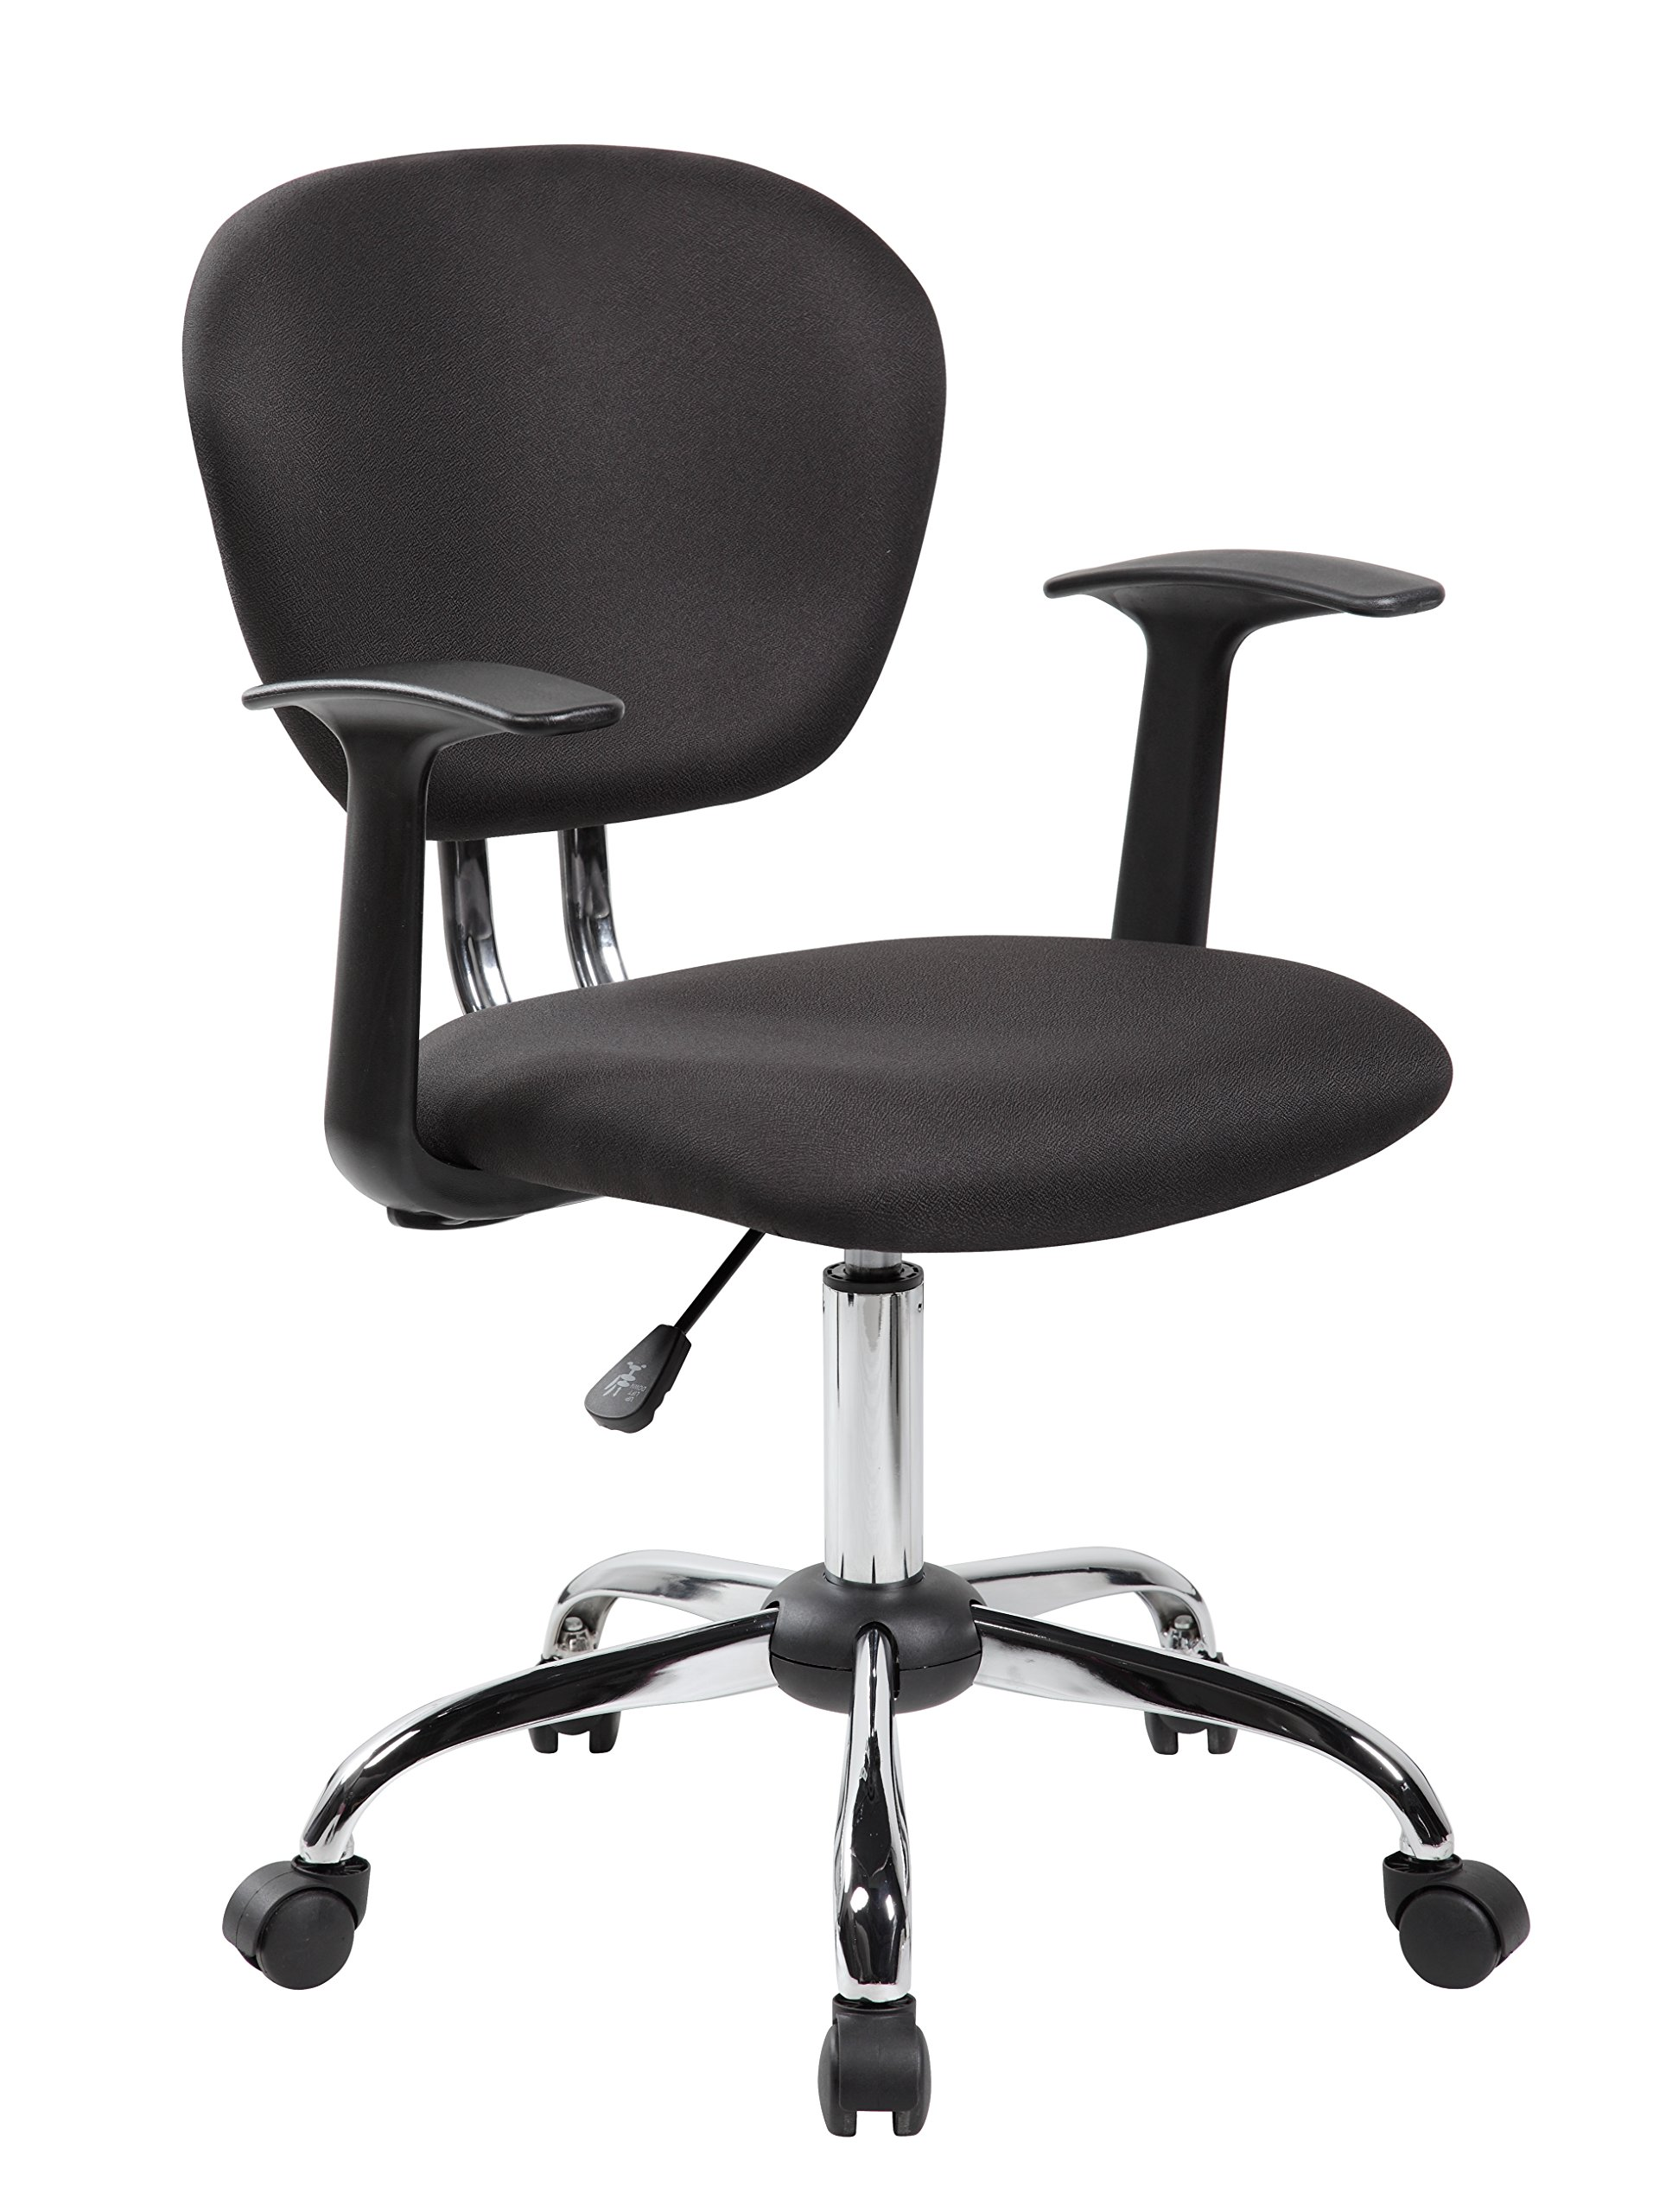 eurosports Task Chair ES-1008F-BK Mid-back Fabric Chair with Arms and Chrome Base, Black